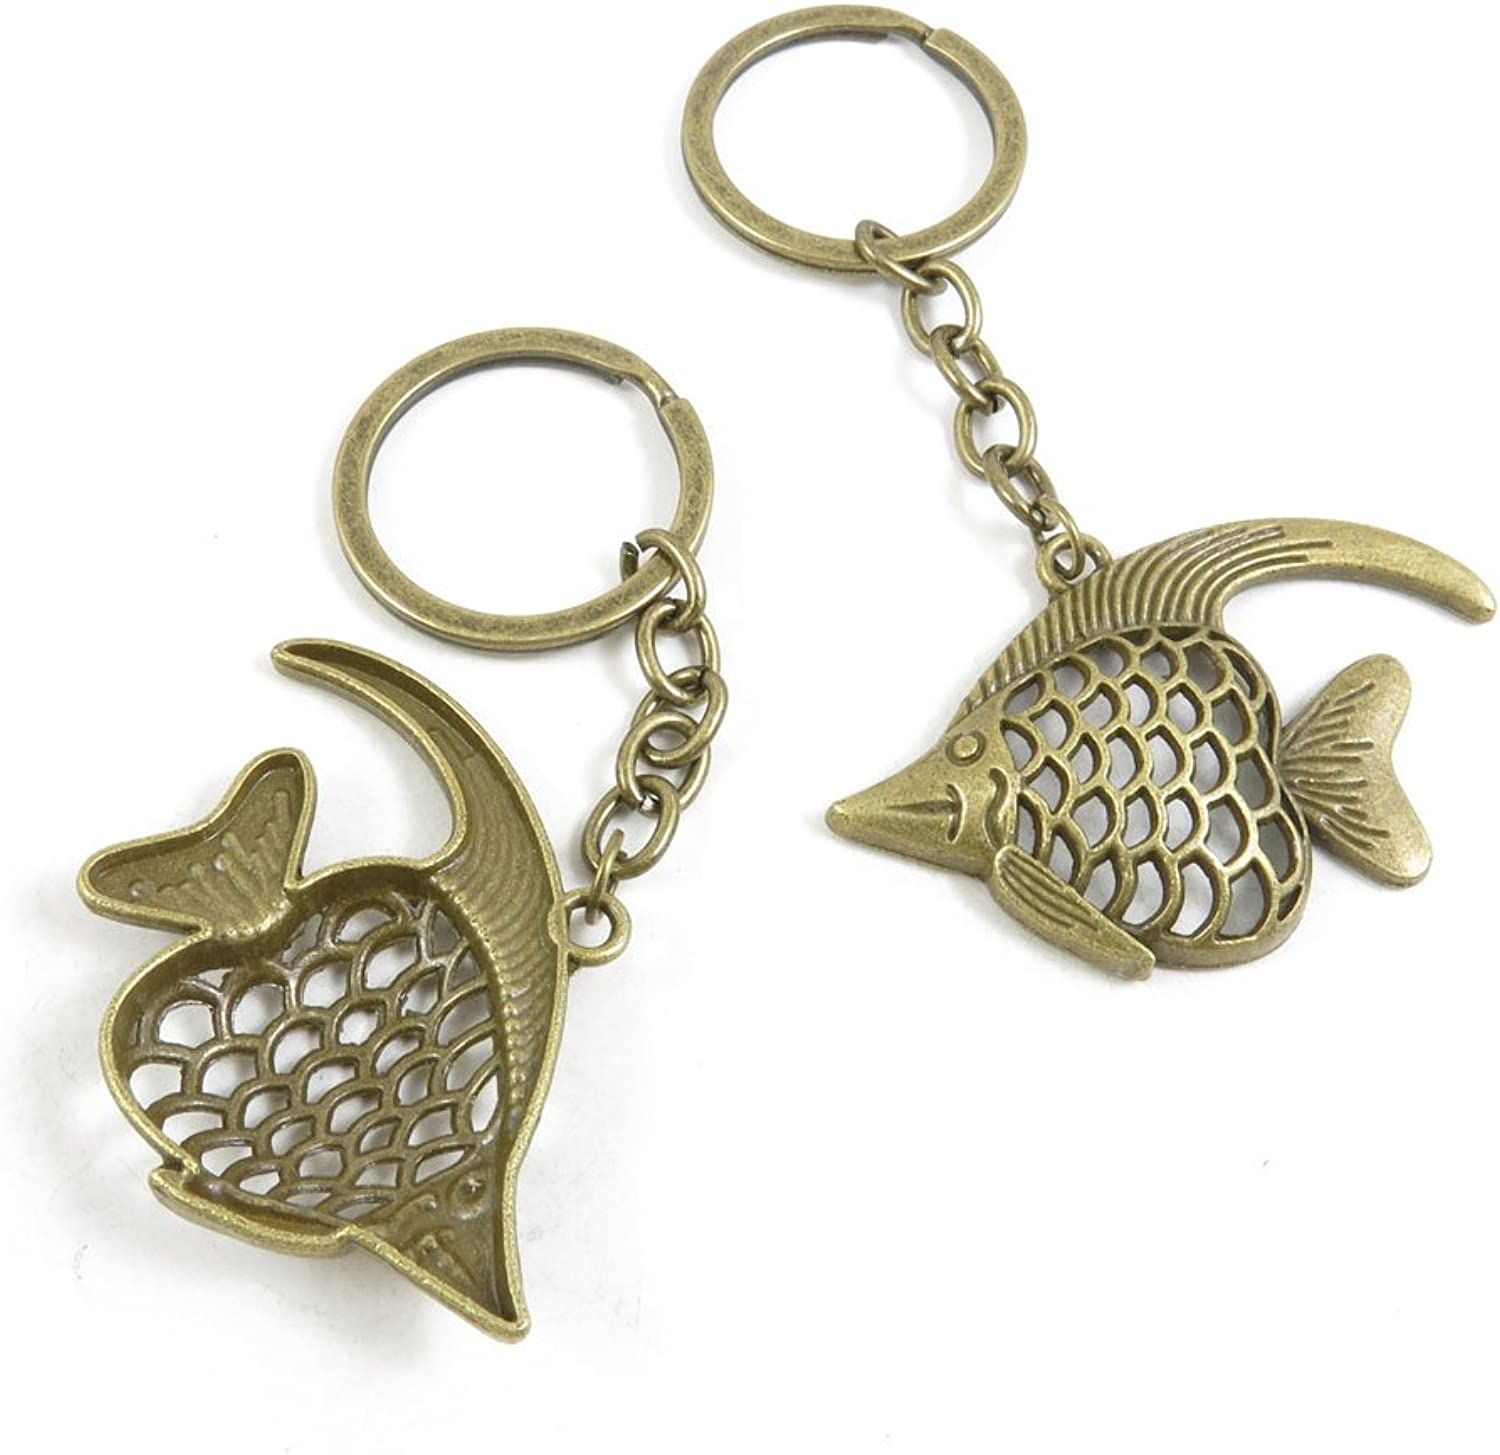 110 Pieces Fashion Jewelry Keyring Keychain Door Car Key Tag Ring Chain Supplier Supply Wholesale Bulk Lots G6JR0 Tropical Fish